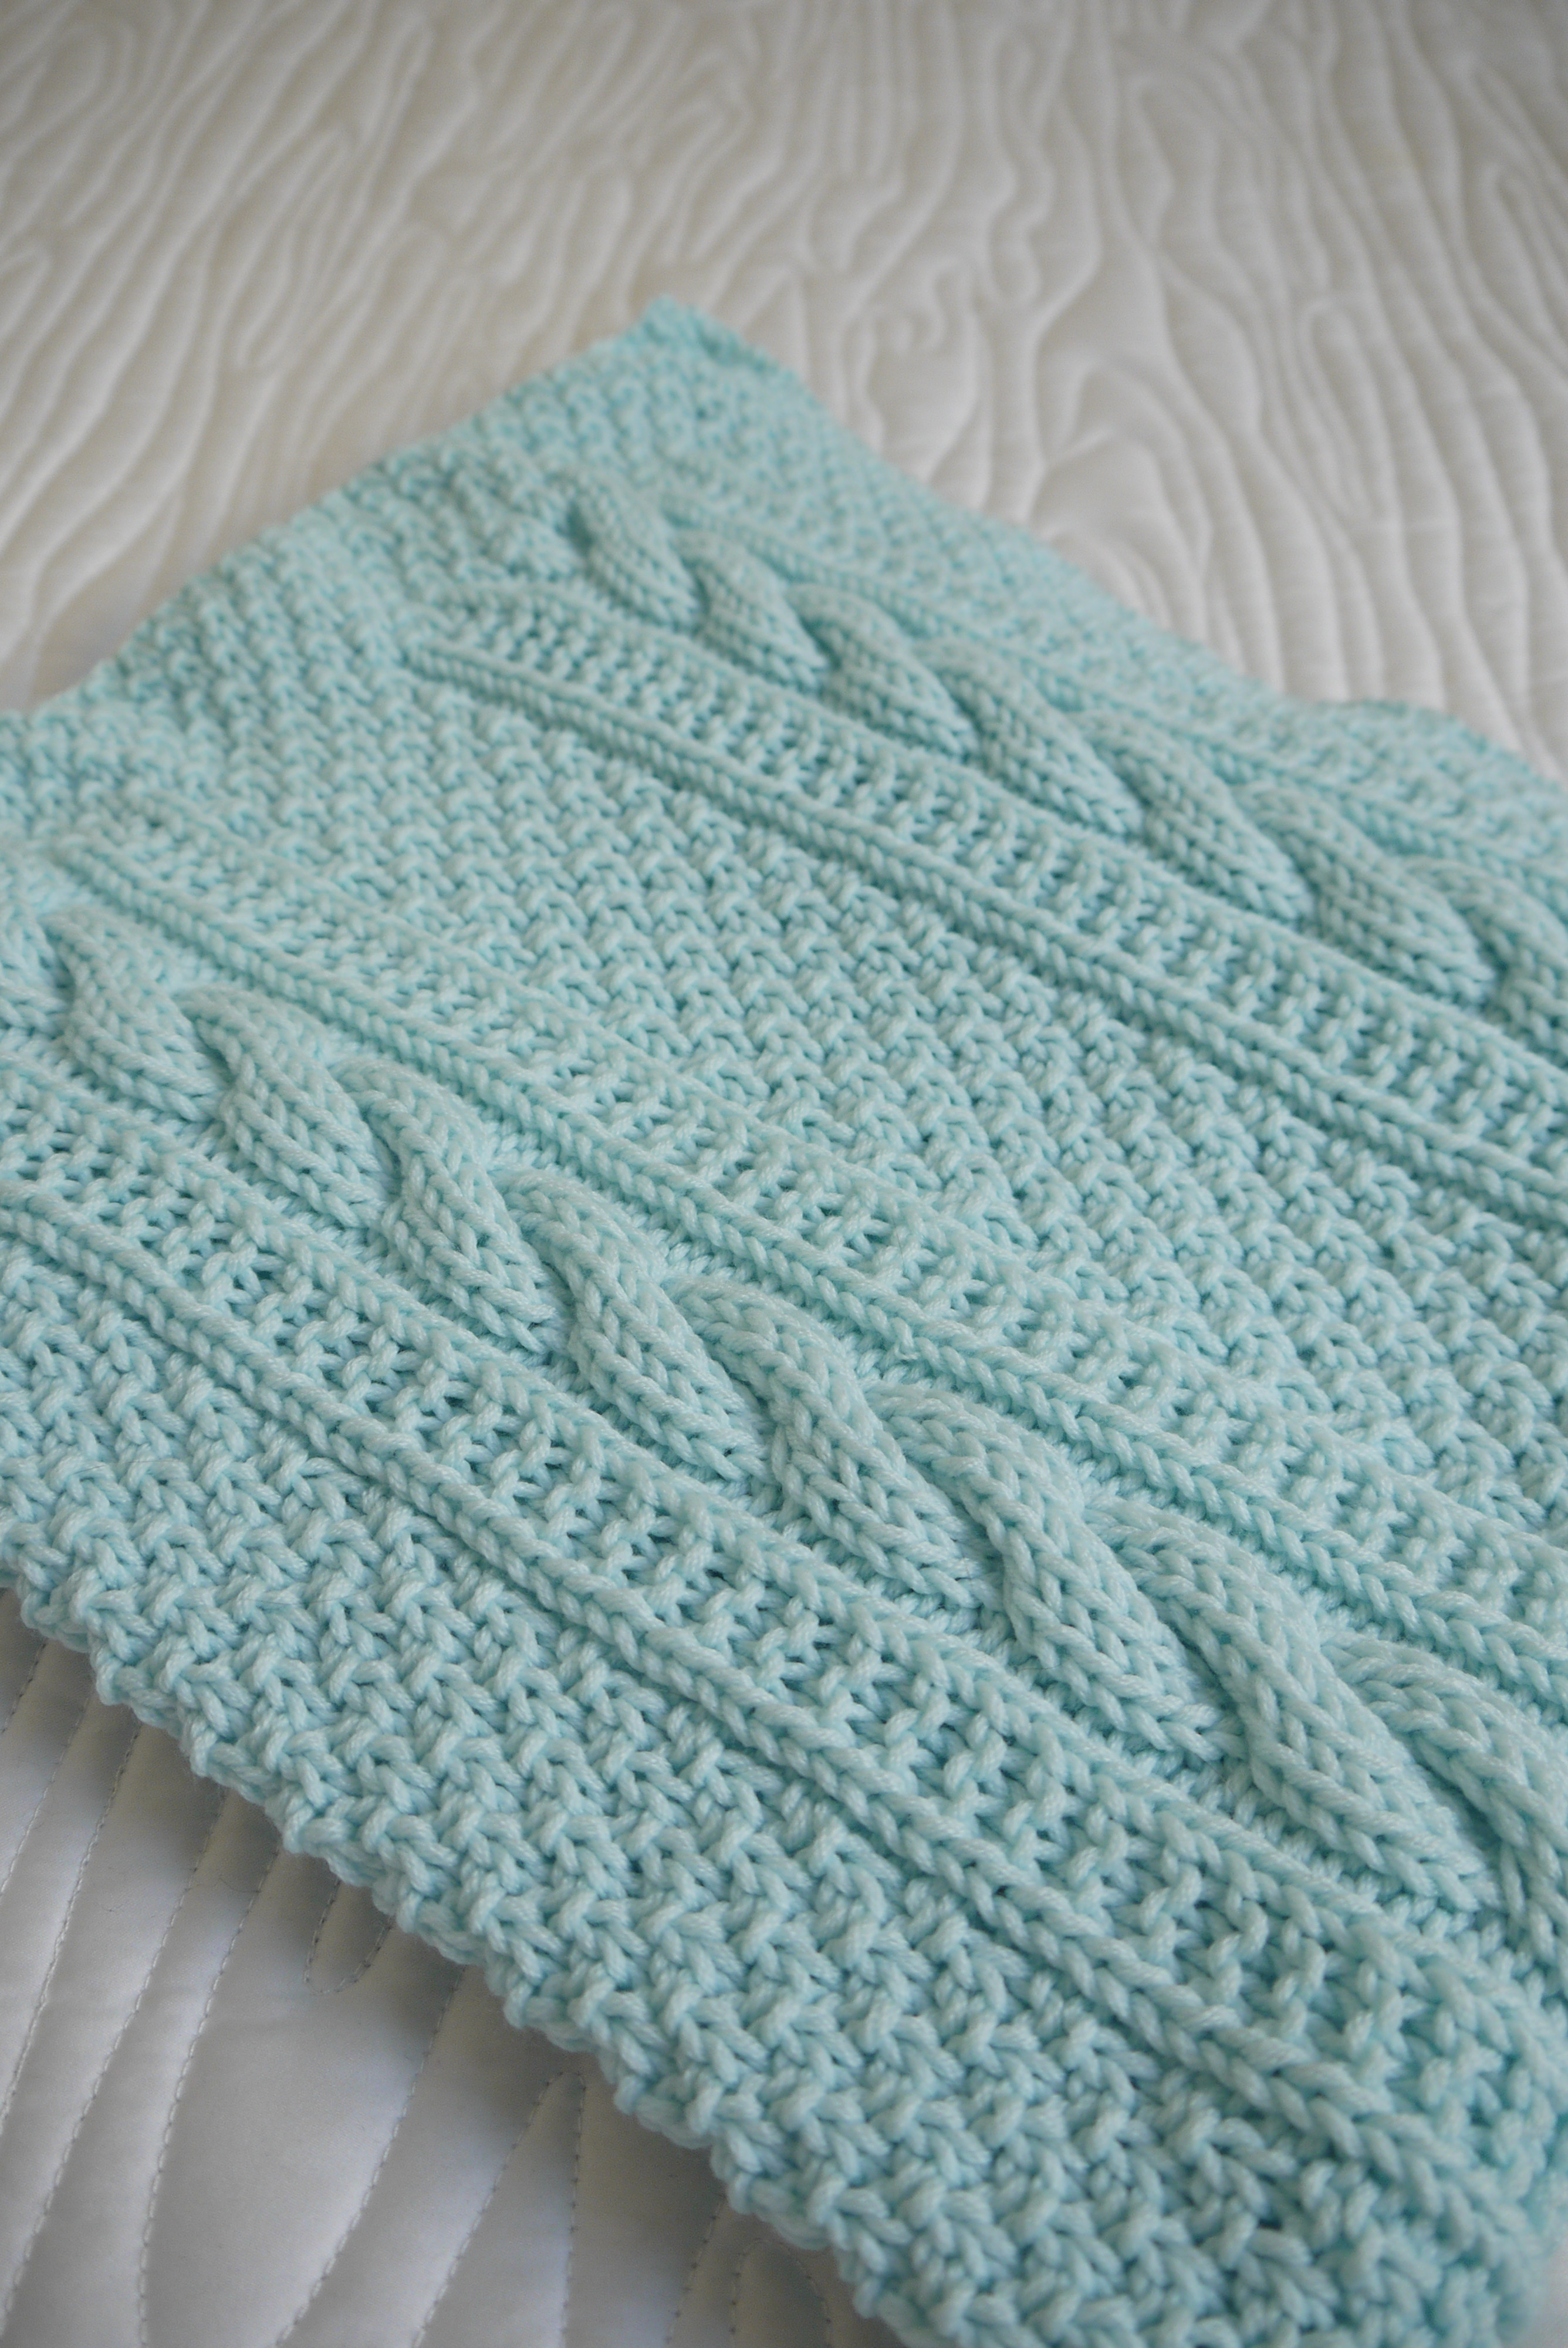 New Baby Blanket Classic Cables Knitting Ideas Of Superb 43 Images Knitting Ideas